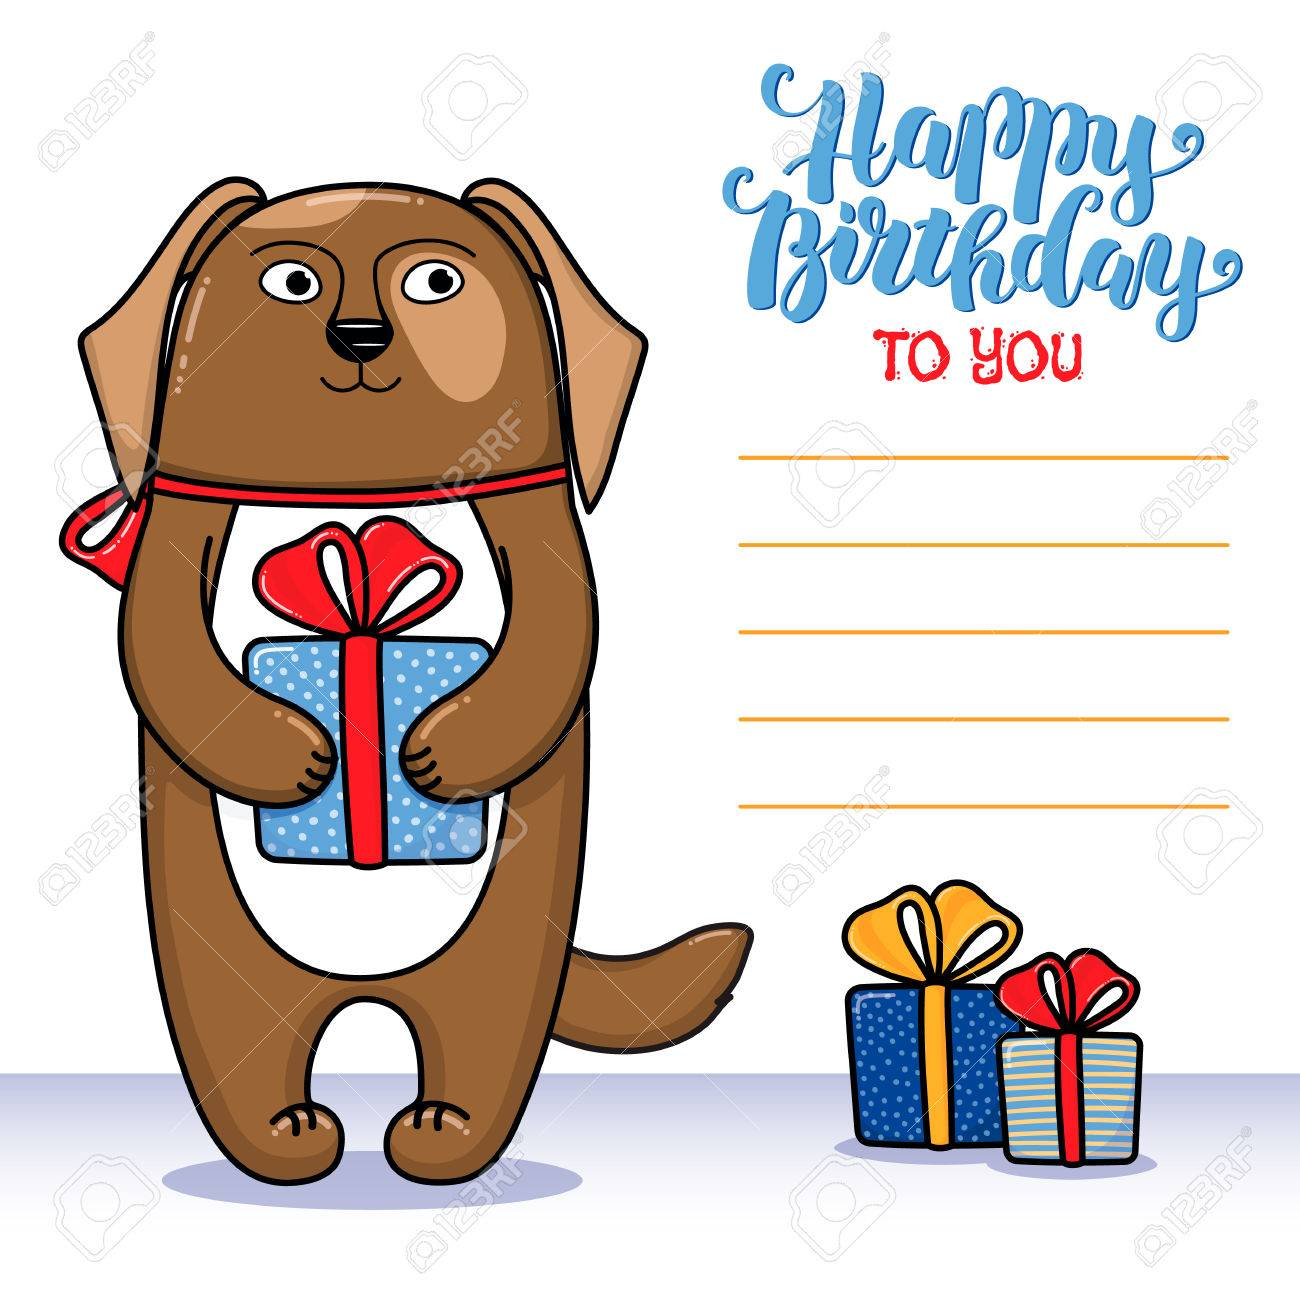 Happy birthday greeting card with dog holding a gift lettering happy birthday greeting card with dog holding a gift lettering and lines for congratulations and kristyandbryce Choice Image